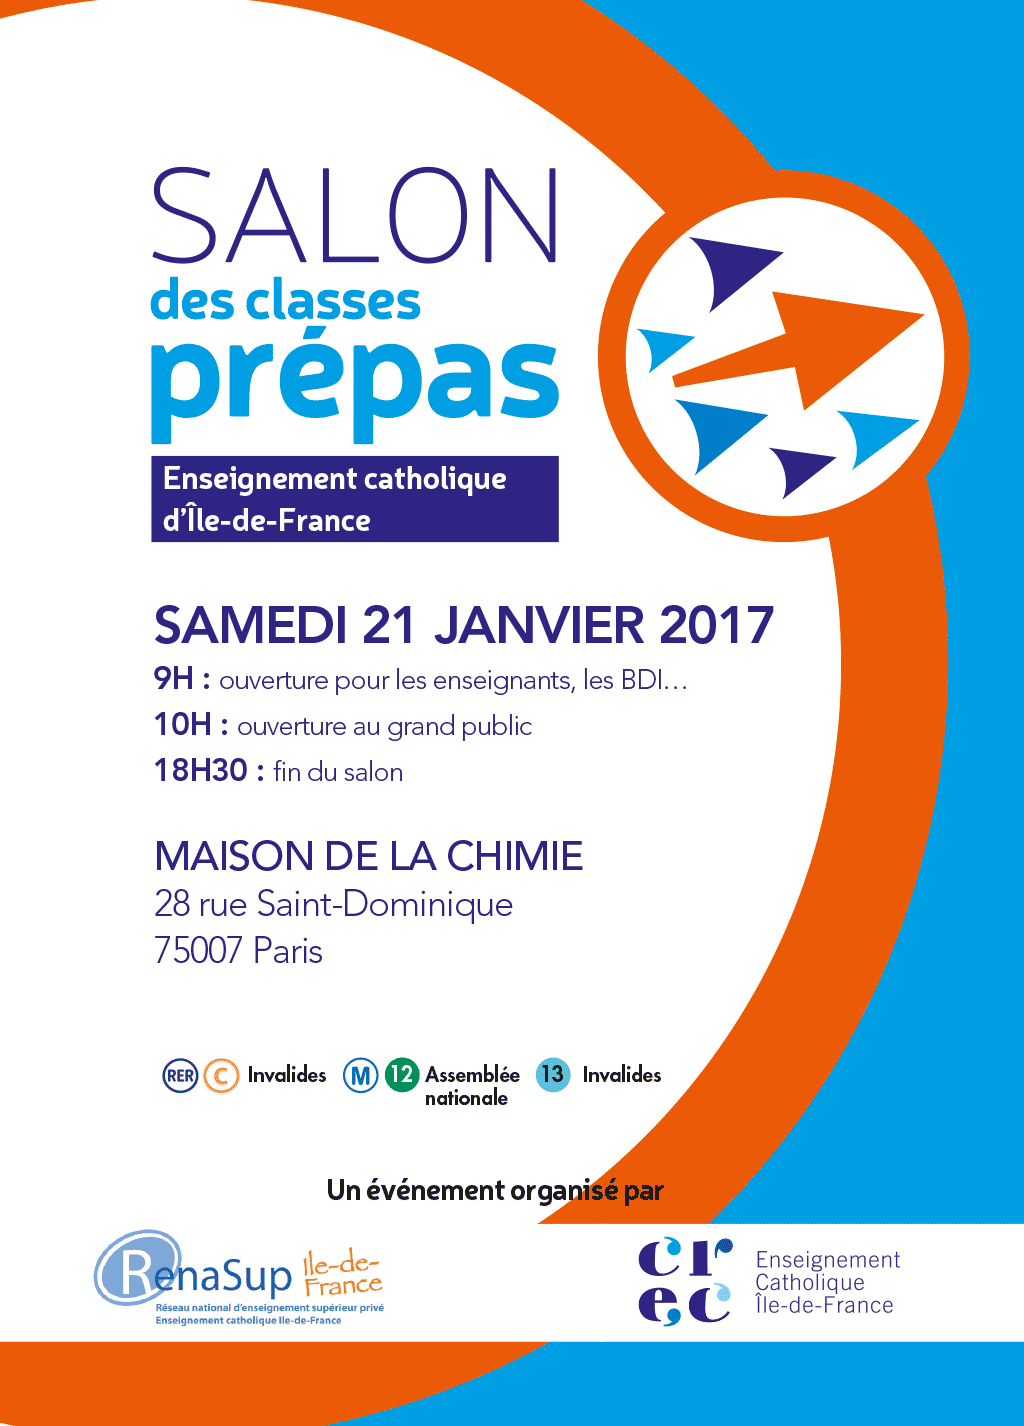 Salon des classes prépas 2017